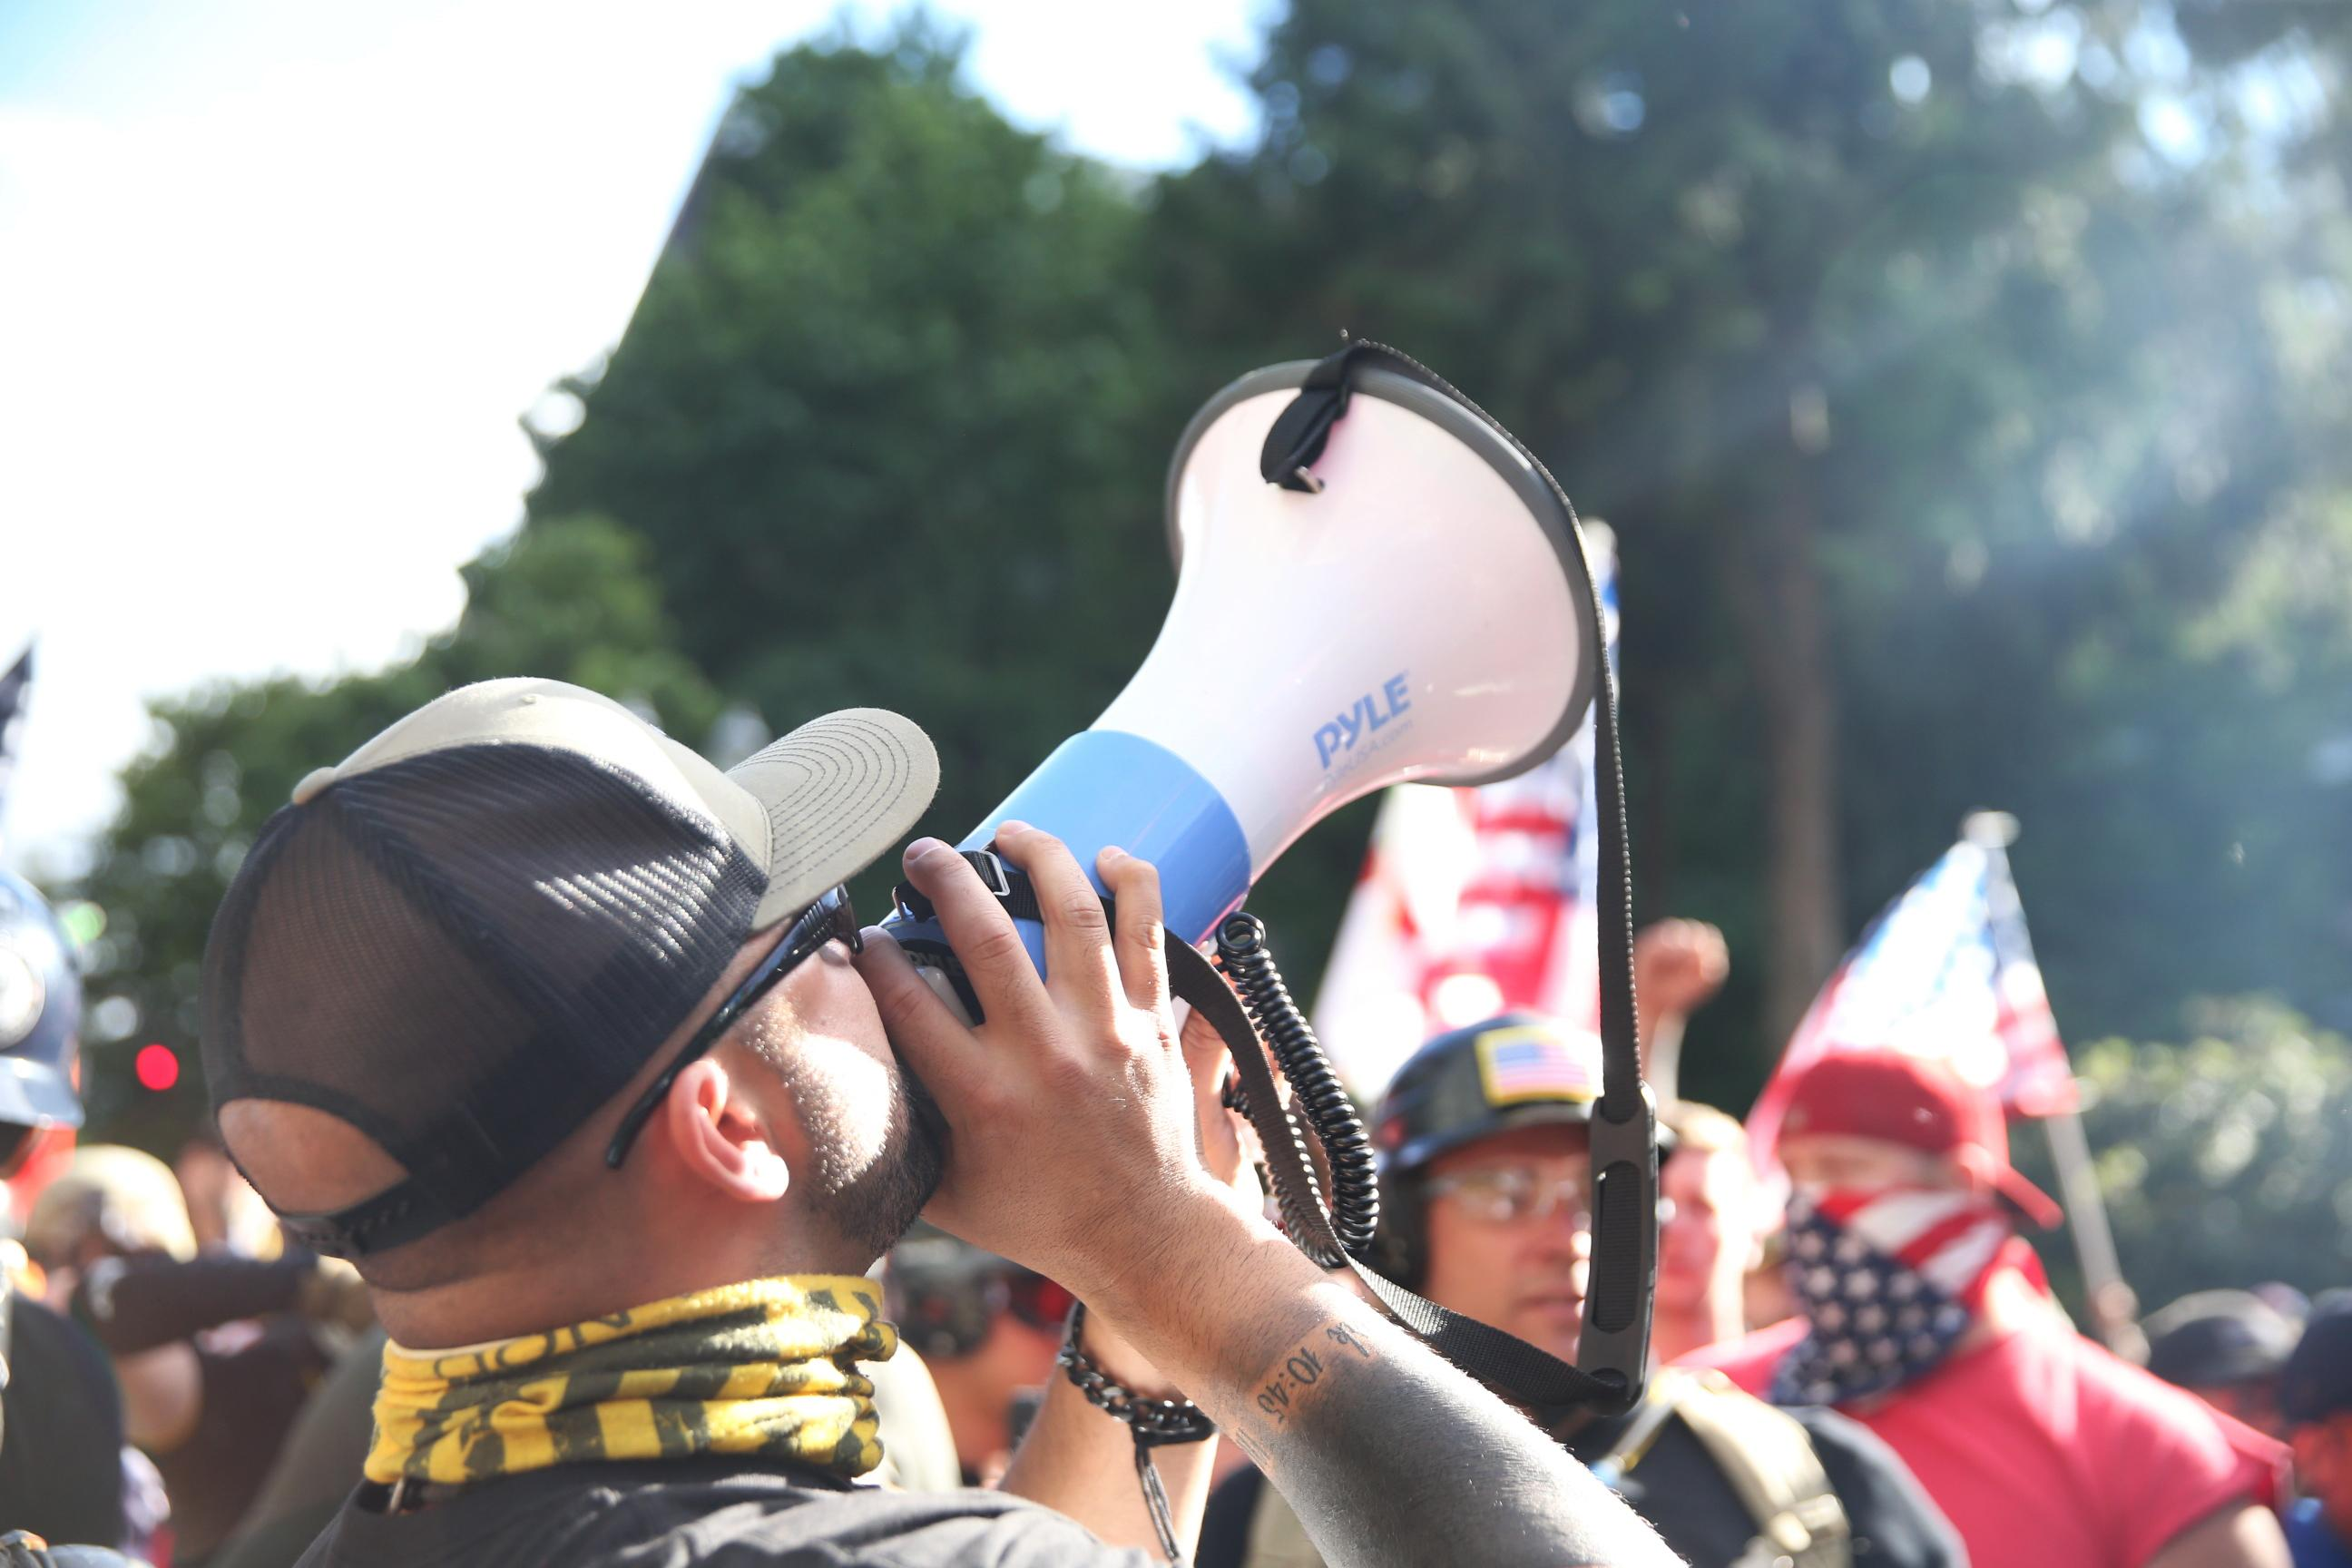 Leaked video shows Portland police making deal to hold off arrests of far-right group